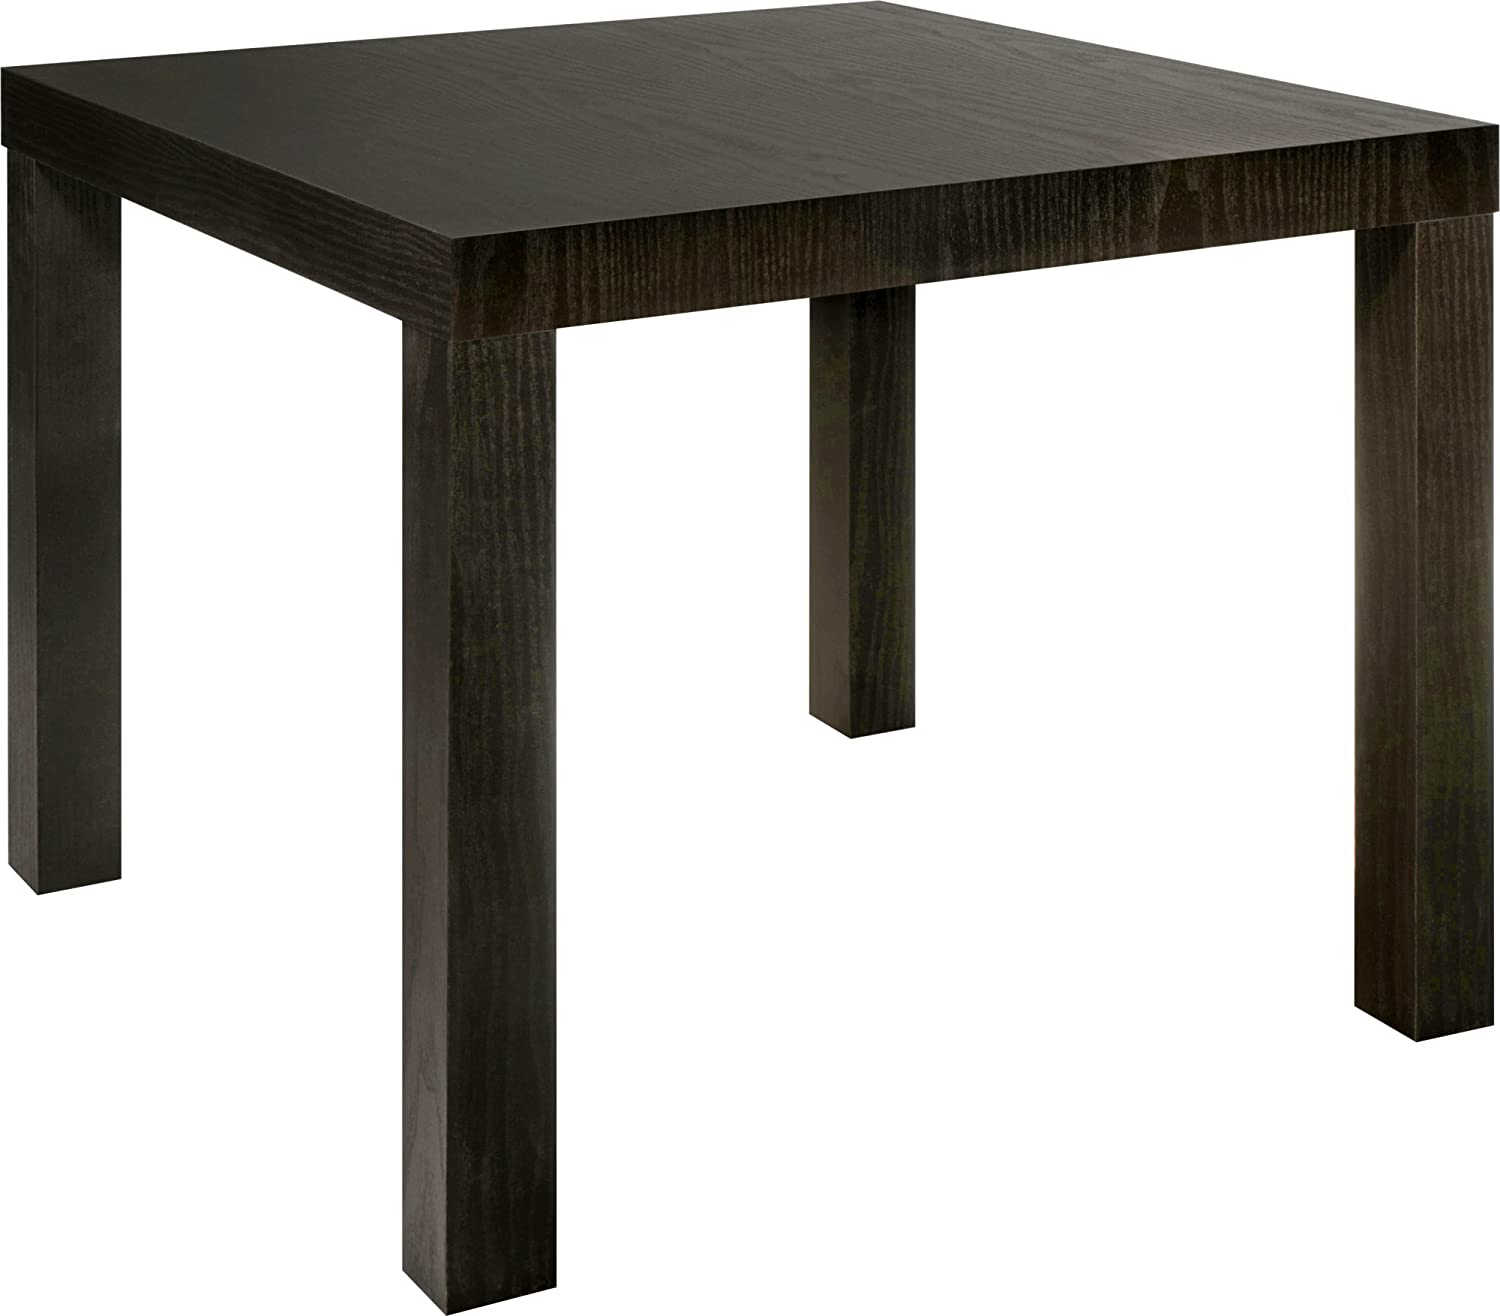 Amazoncom DHP Parsons Modern End Table Black Wood Grain Kitchen